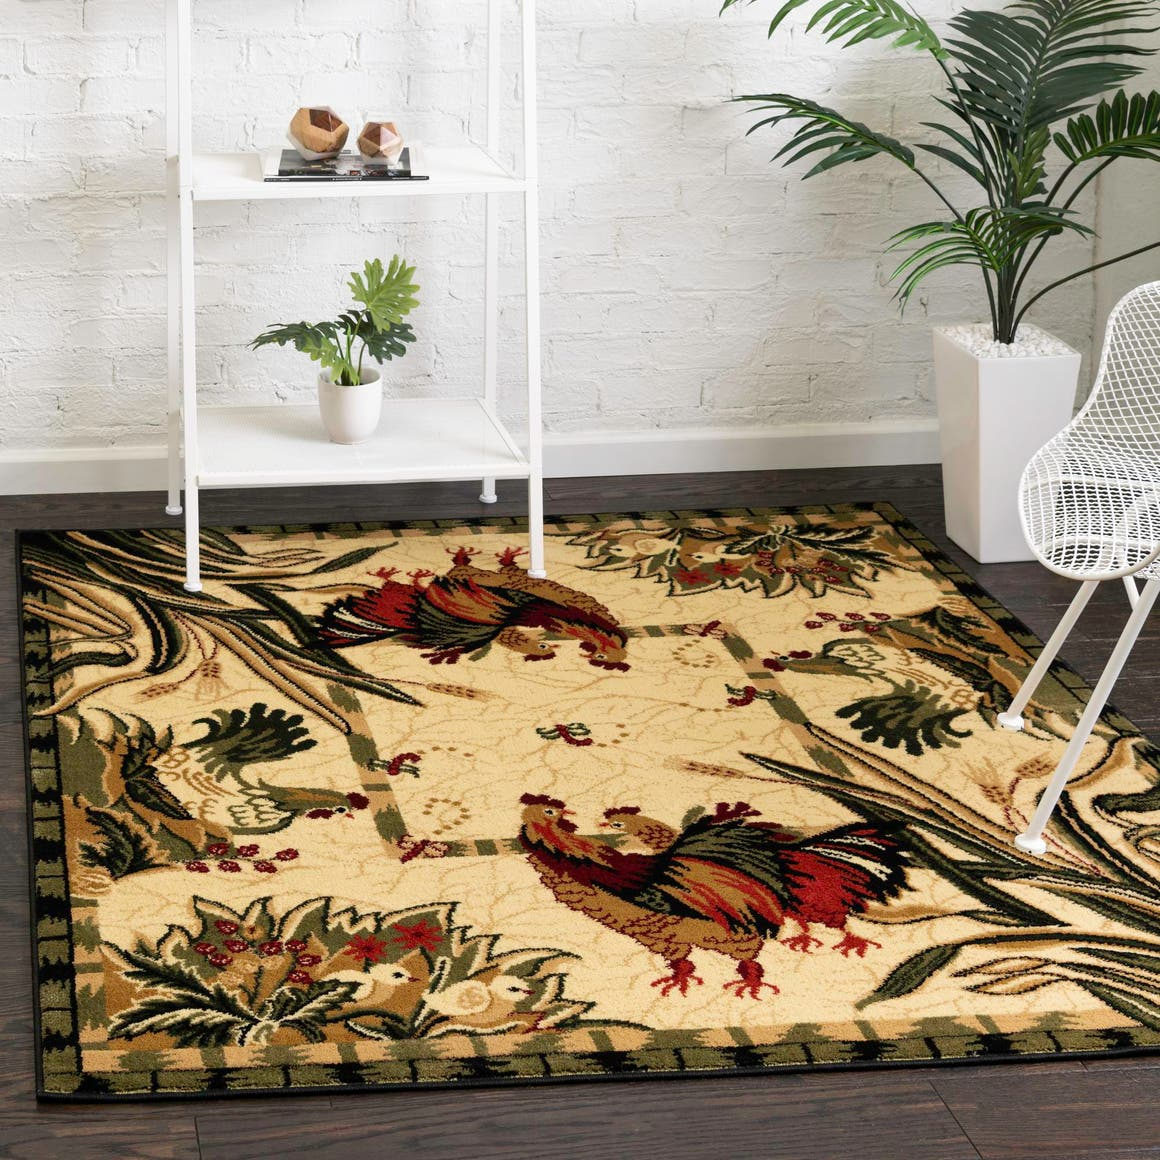 6' x 6' Country Square Rug main image